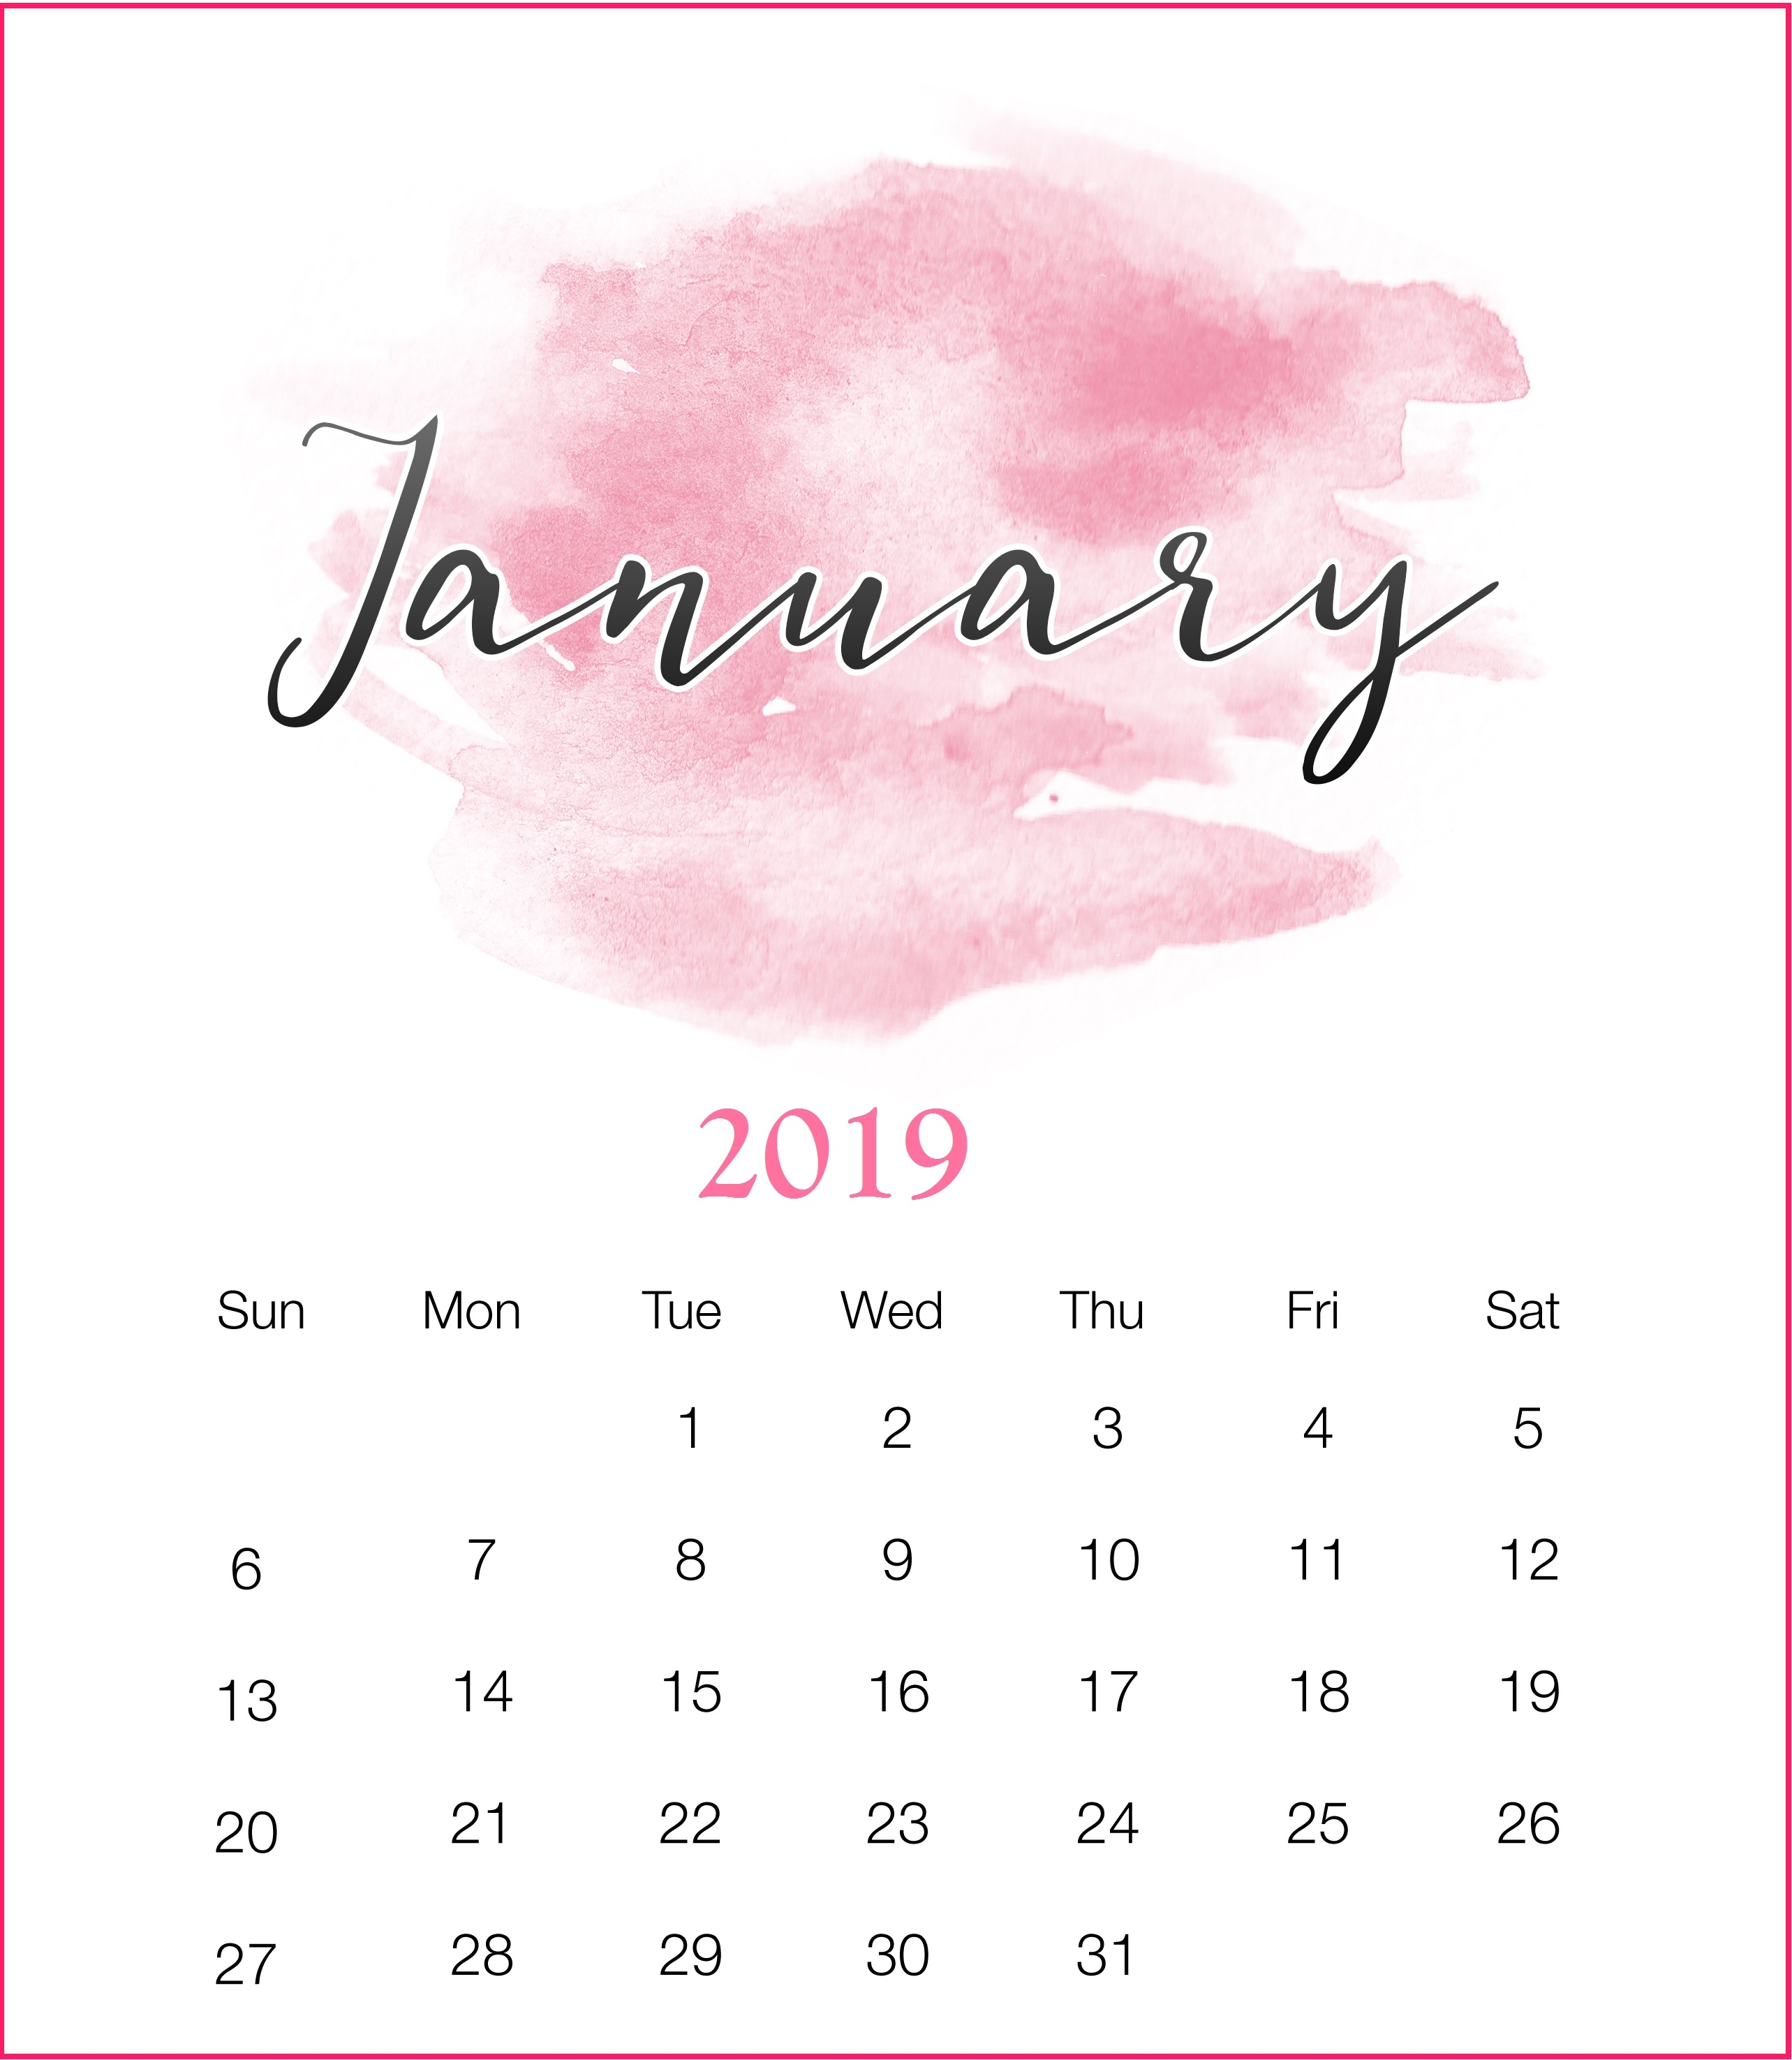 watercolor 2019 monthly printable calendar calendar 2019::January 2019 Calendar Portrait